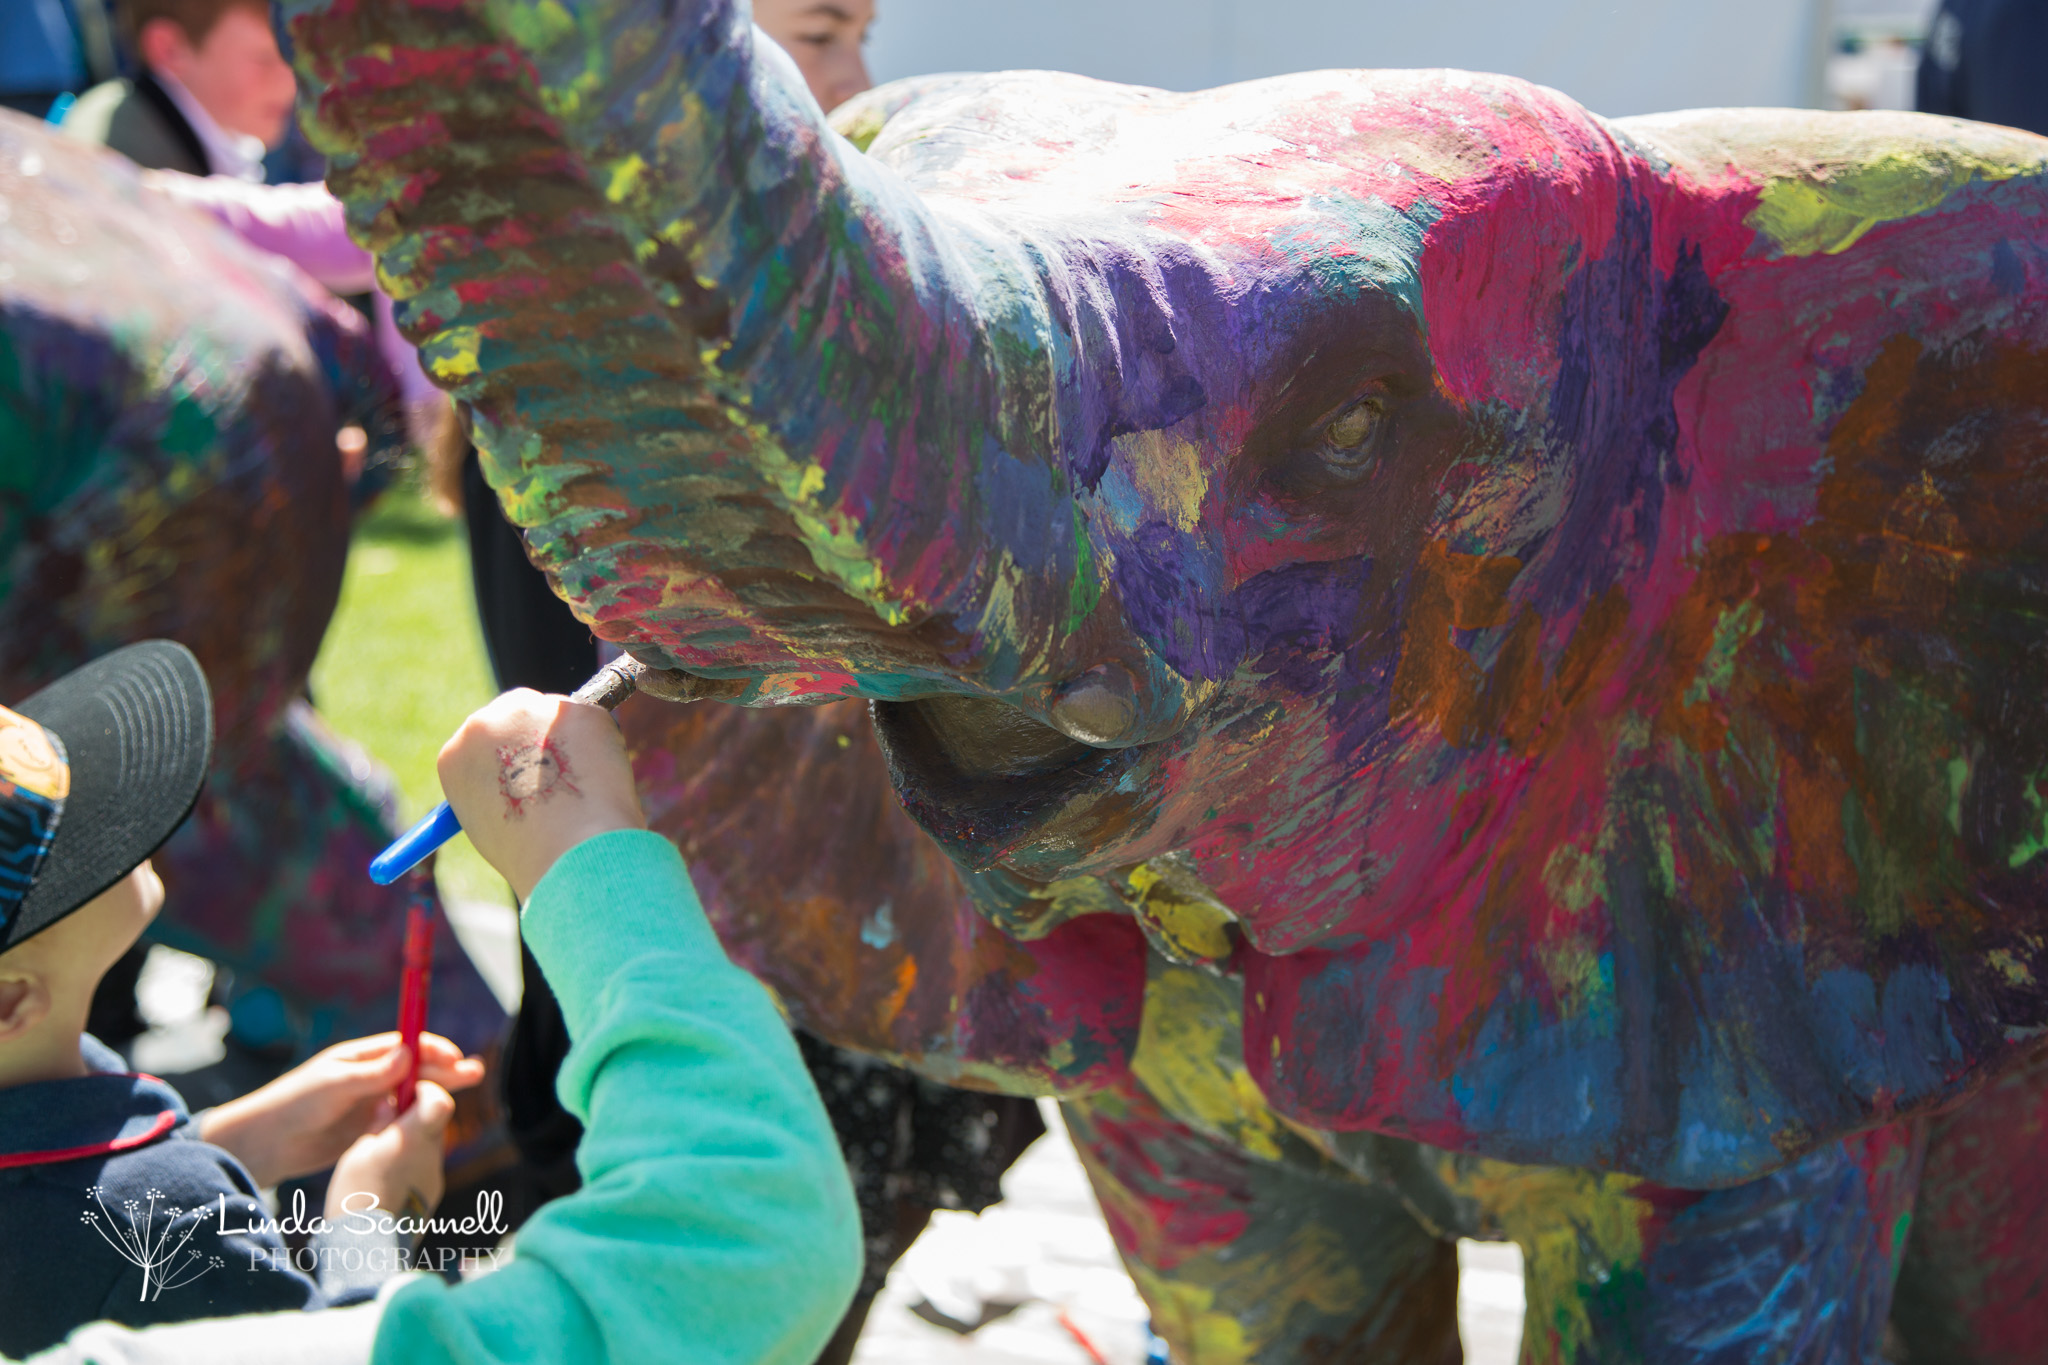 Close up of elephants being painted at Art in the Park 2017, Leamington Spa